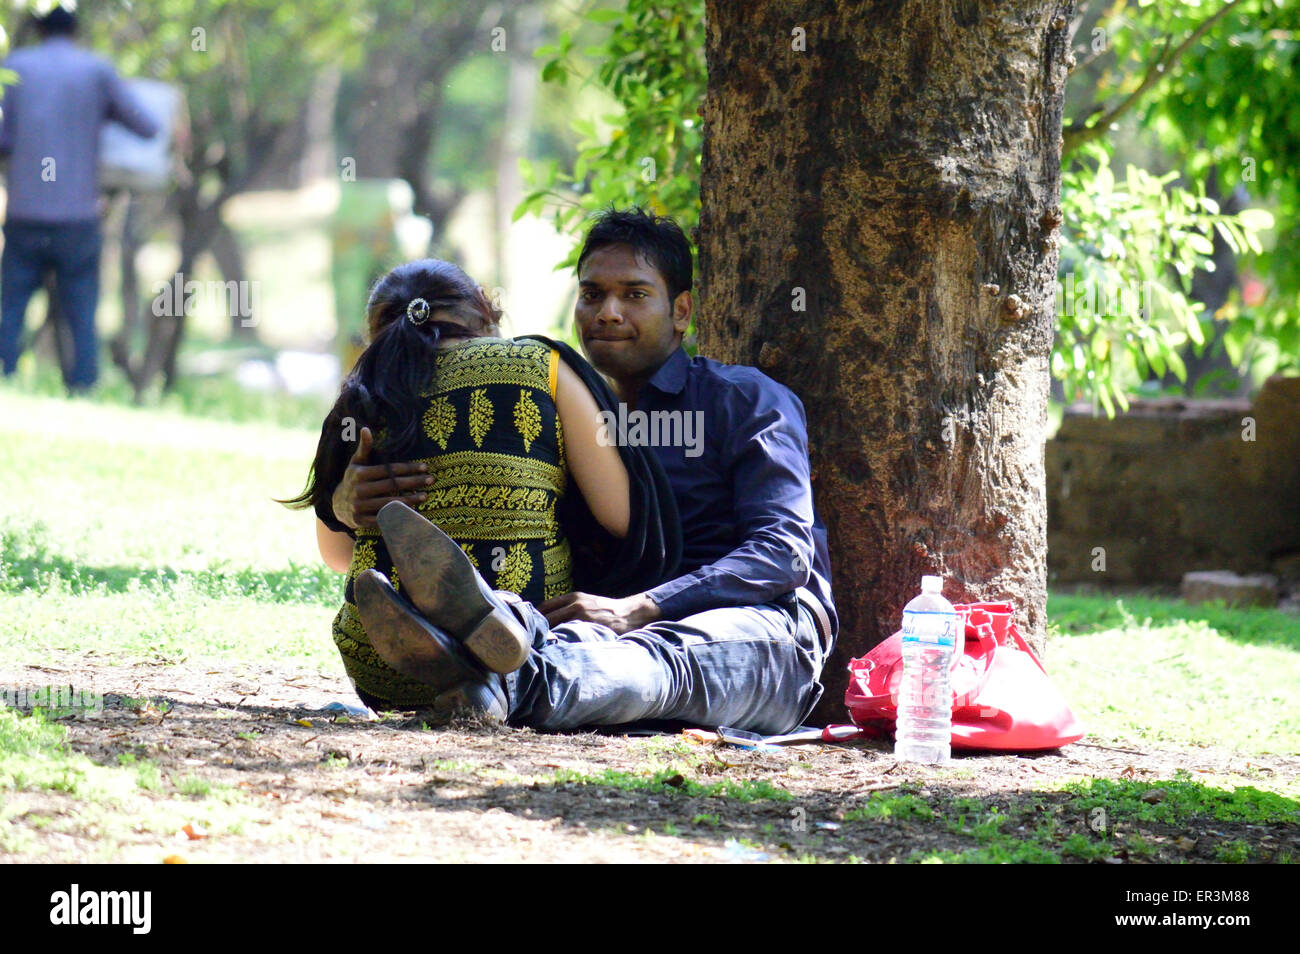 indian lovers stock photos & indian lovers stock images - alamy